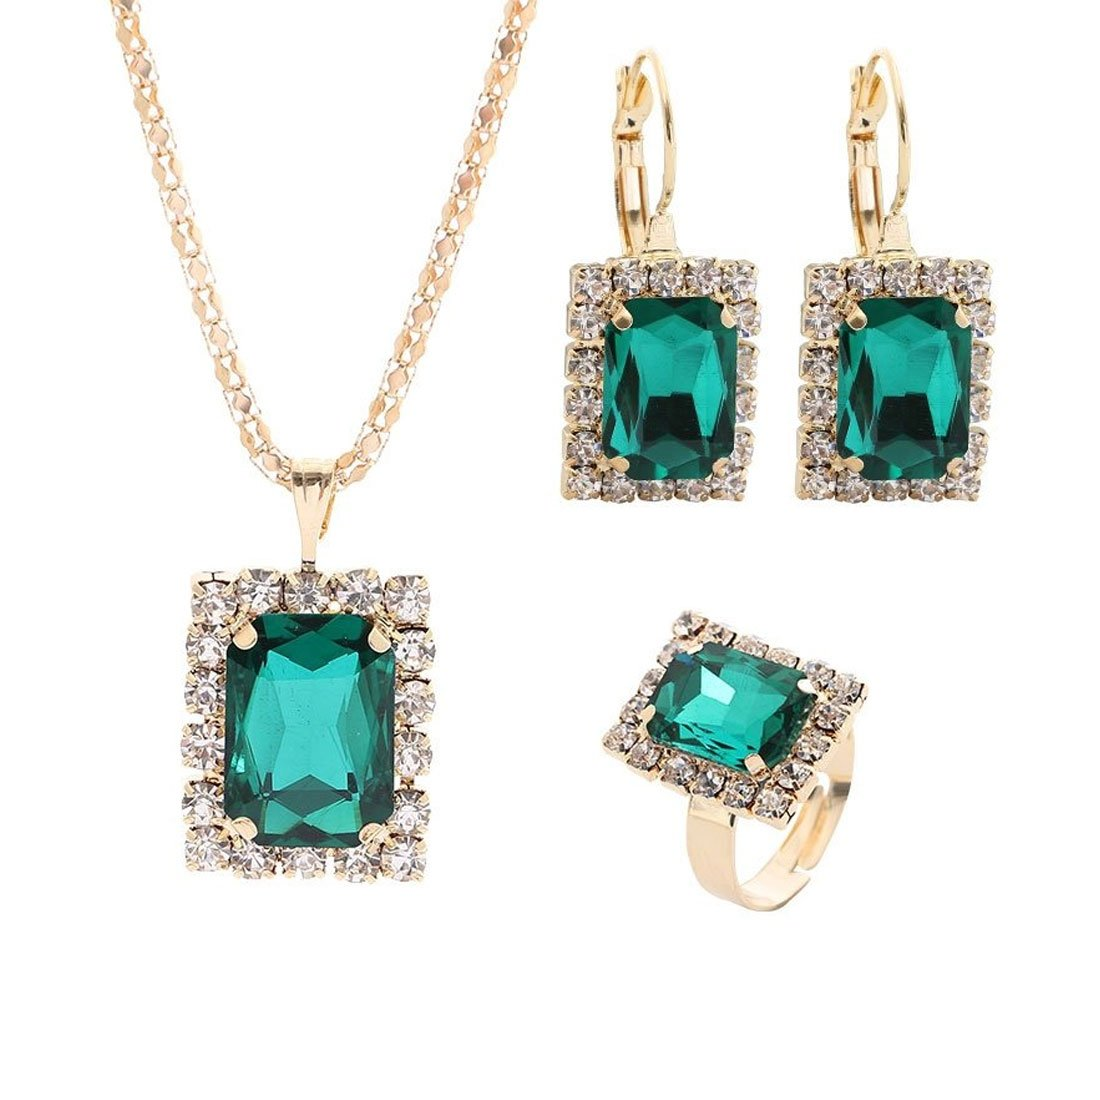 NOVADAB Gorgeous Topaz Carved Glass 3 Piece Set For Women (Green)